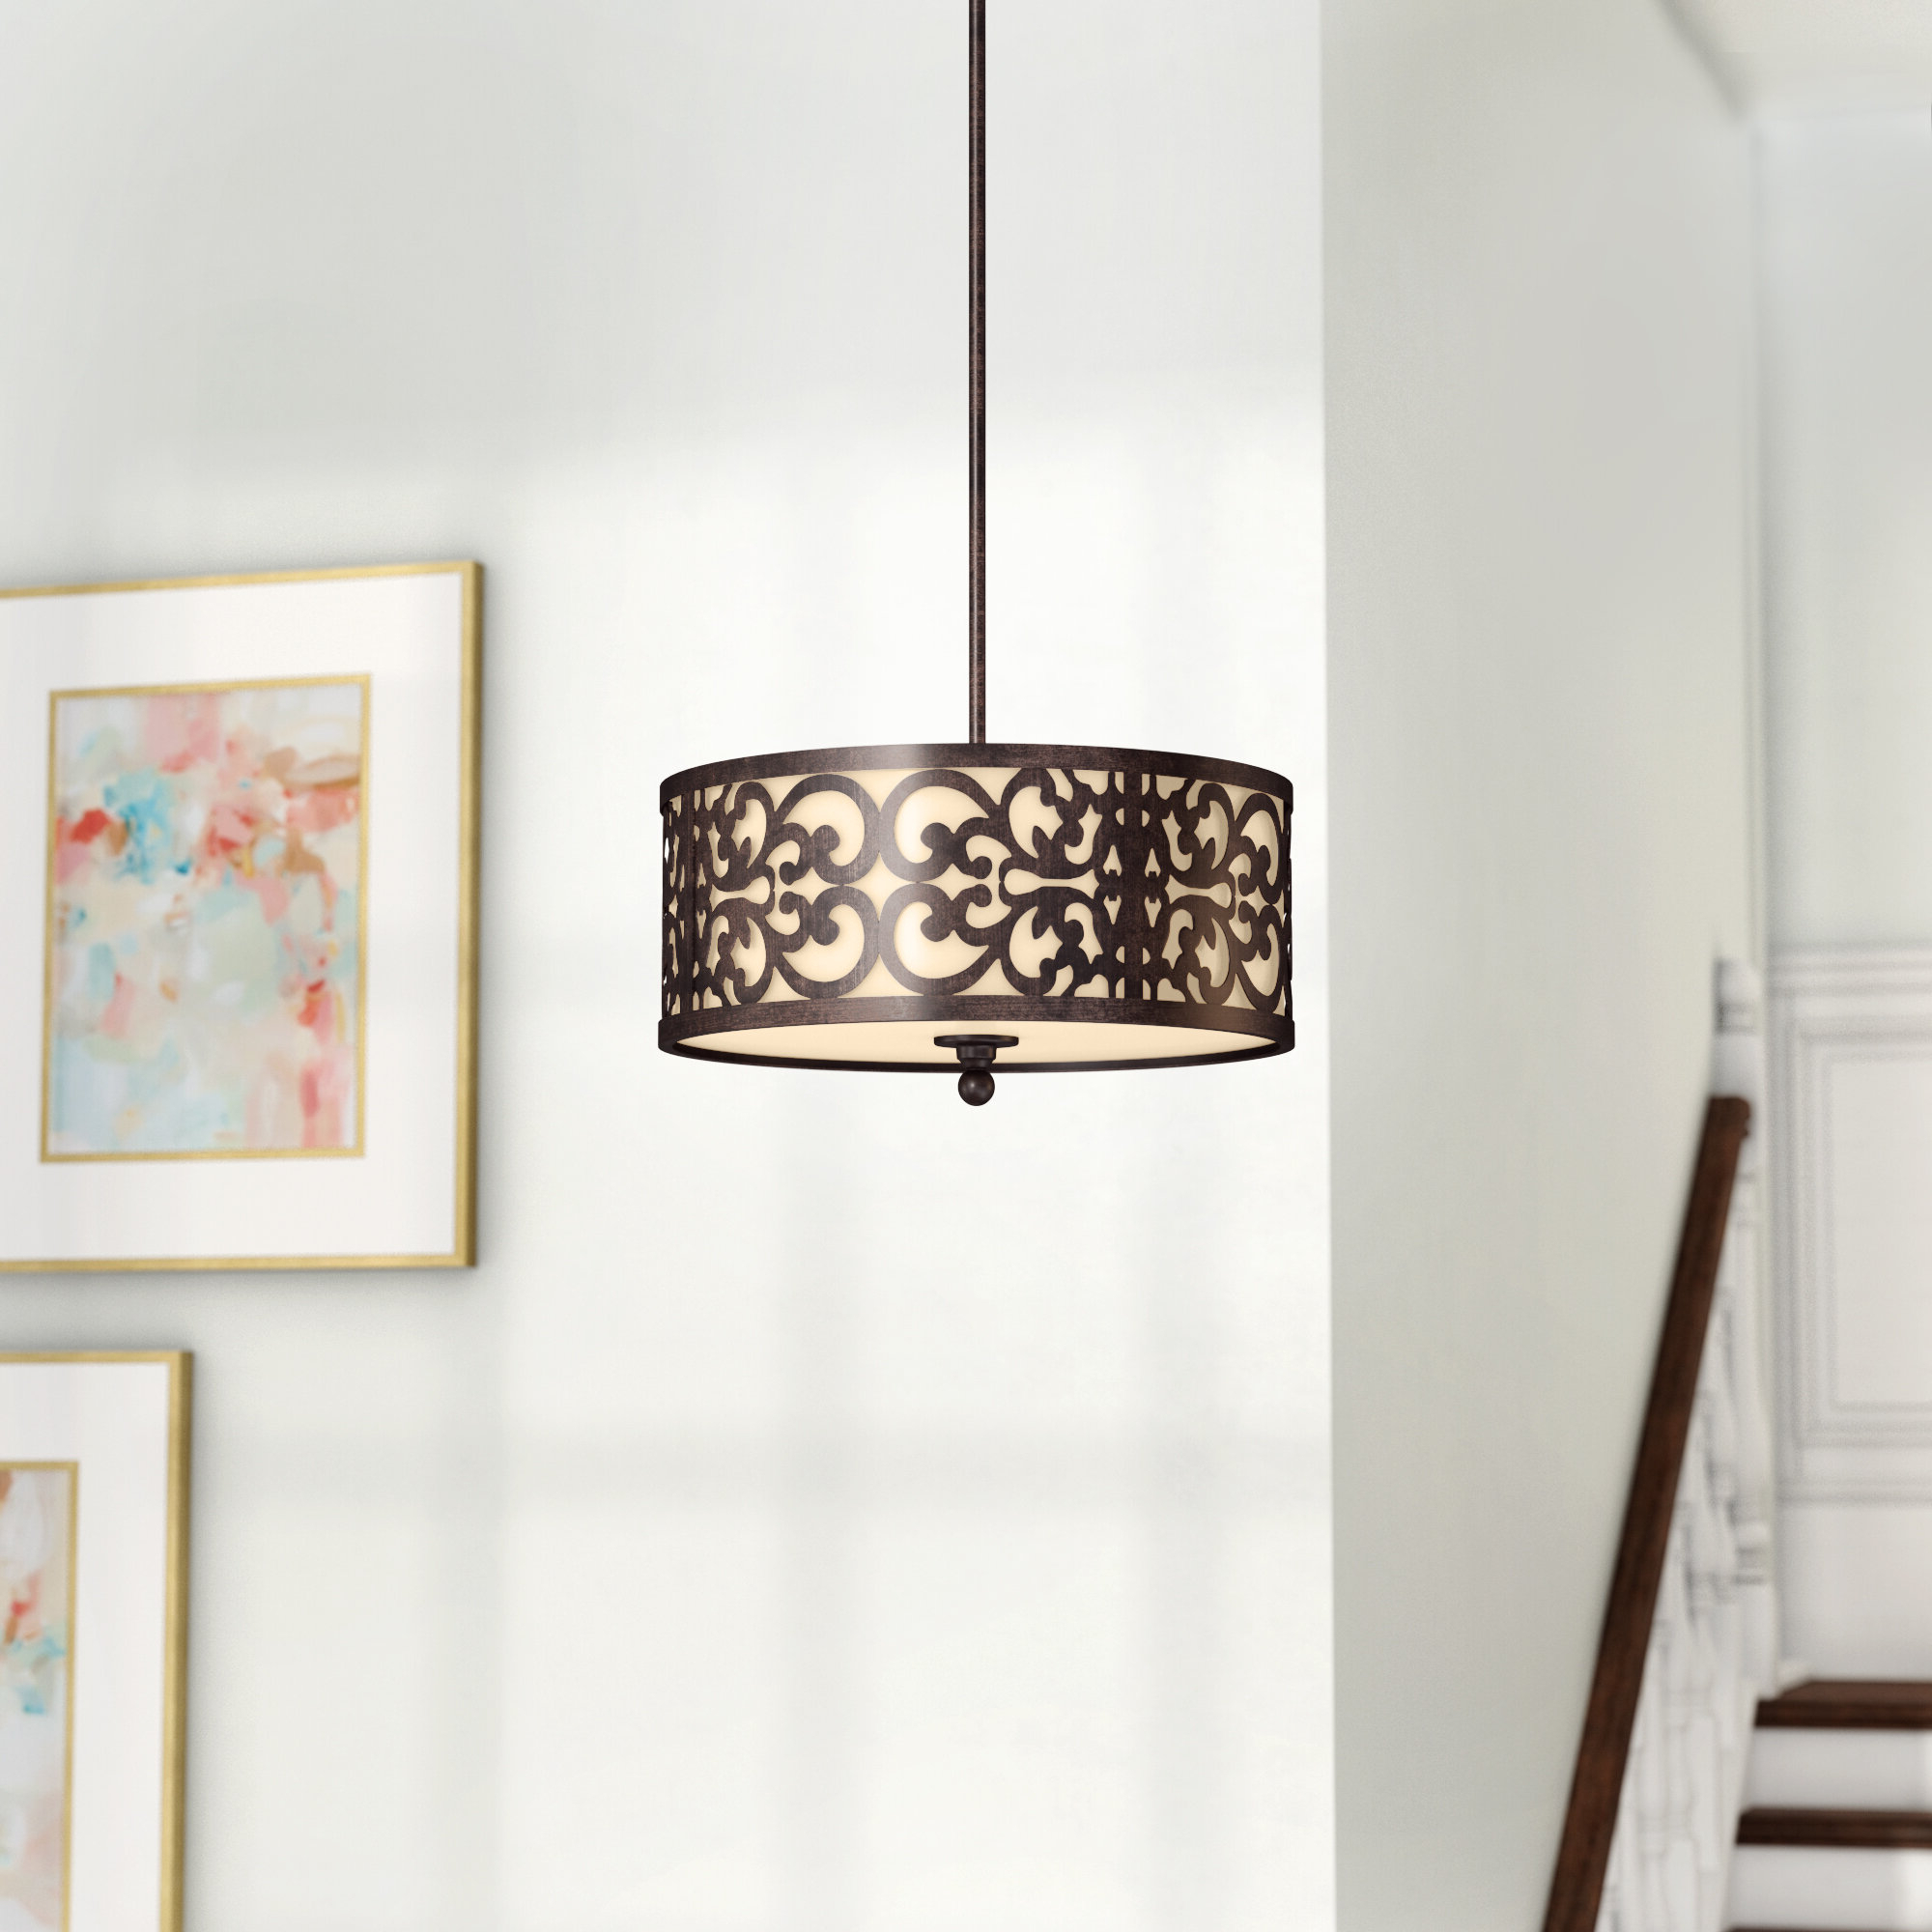 Tadwick 3 Light Single Drum Chandeliers With Current Aegean 3 Light Single Drum Pendant (View 3 of 25)